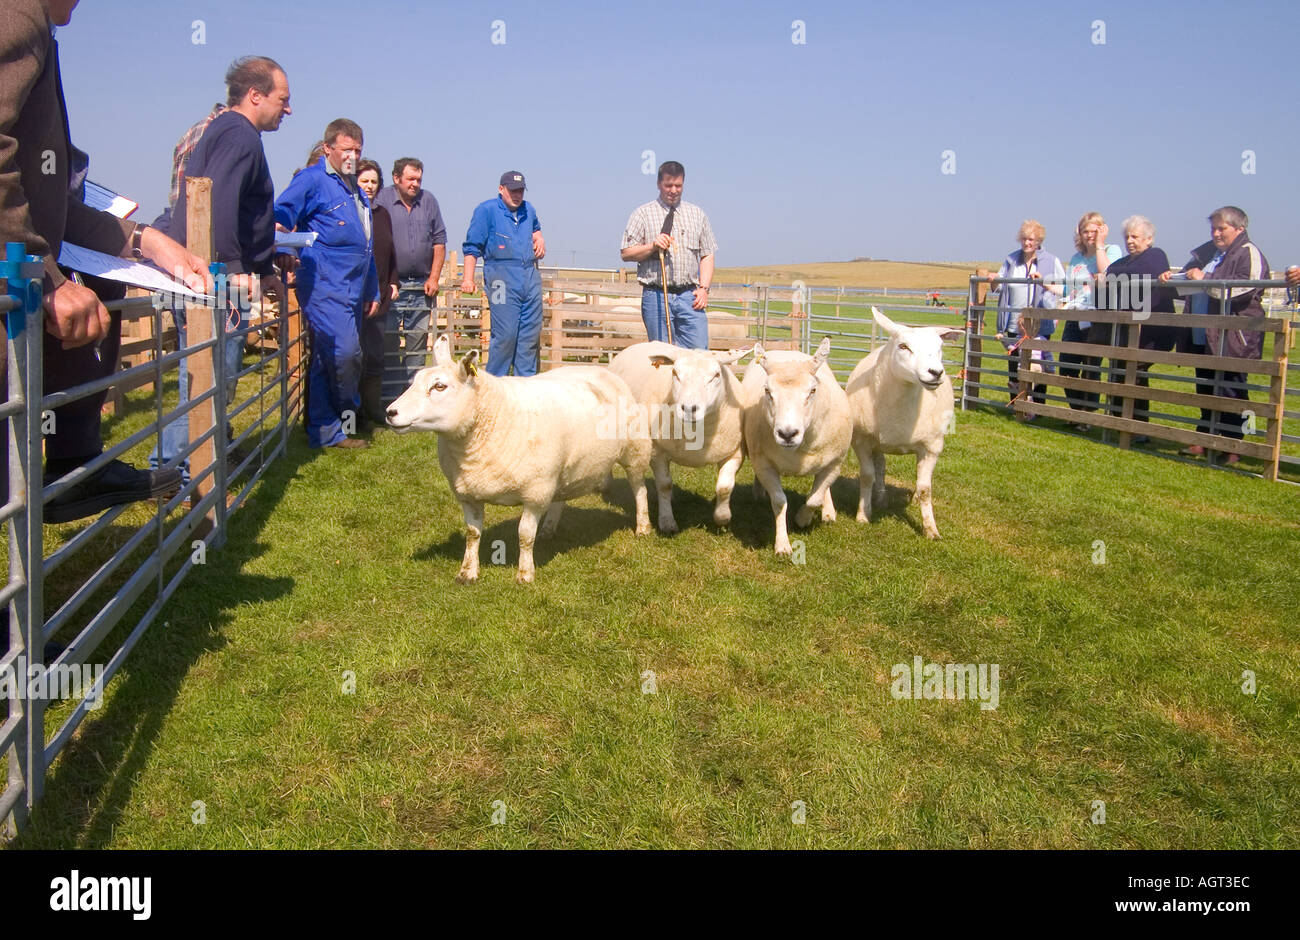 dh Annual Show SHAPINSAY ORKNEY Judge judging Ewe sheep at agricultural show Stock Photo